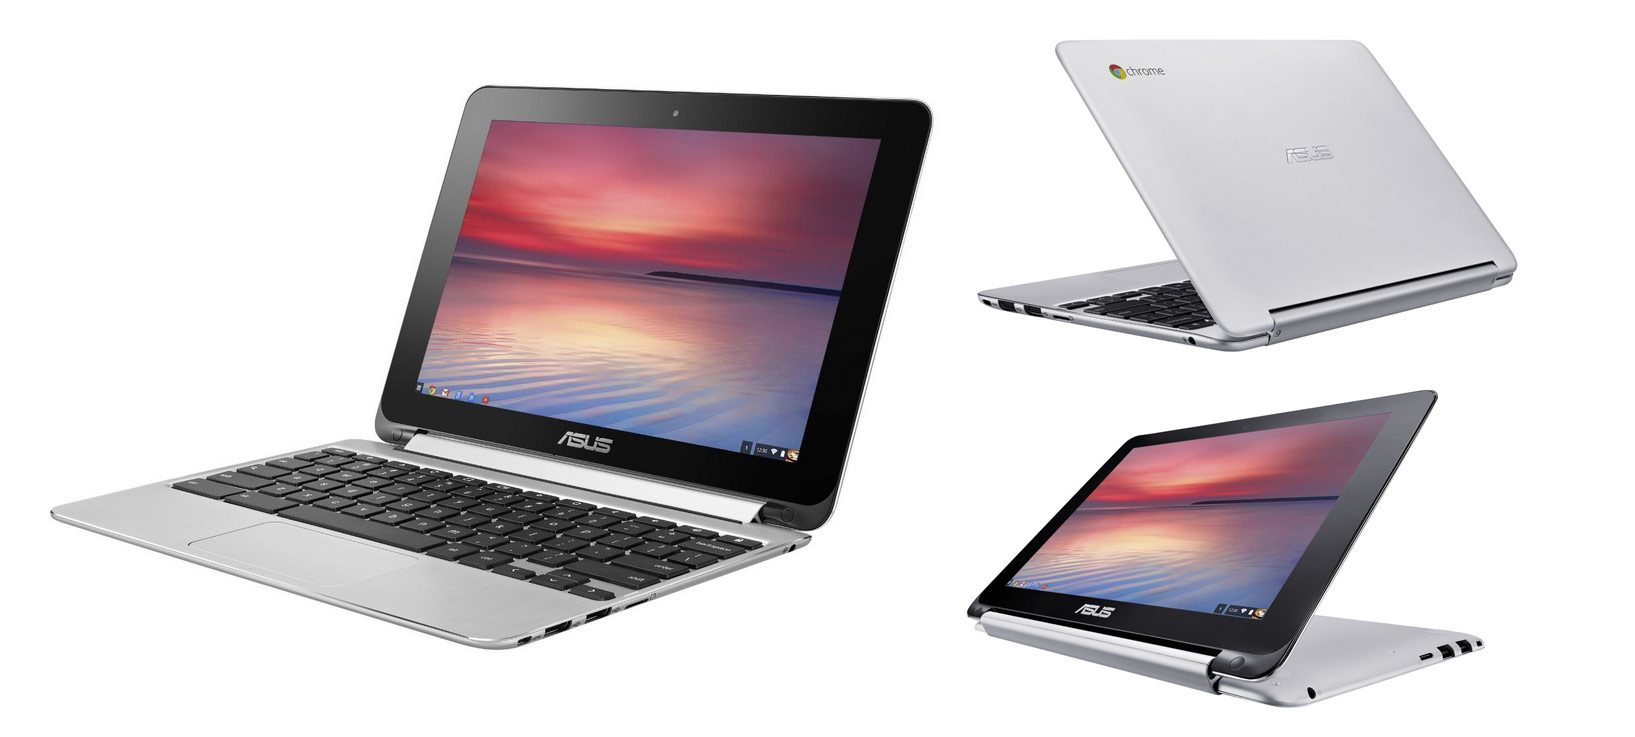 The Chromebook Flip is the option to get if you want a very compact and light convertible